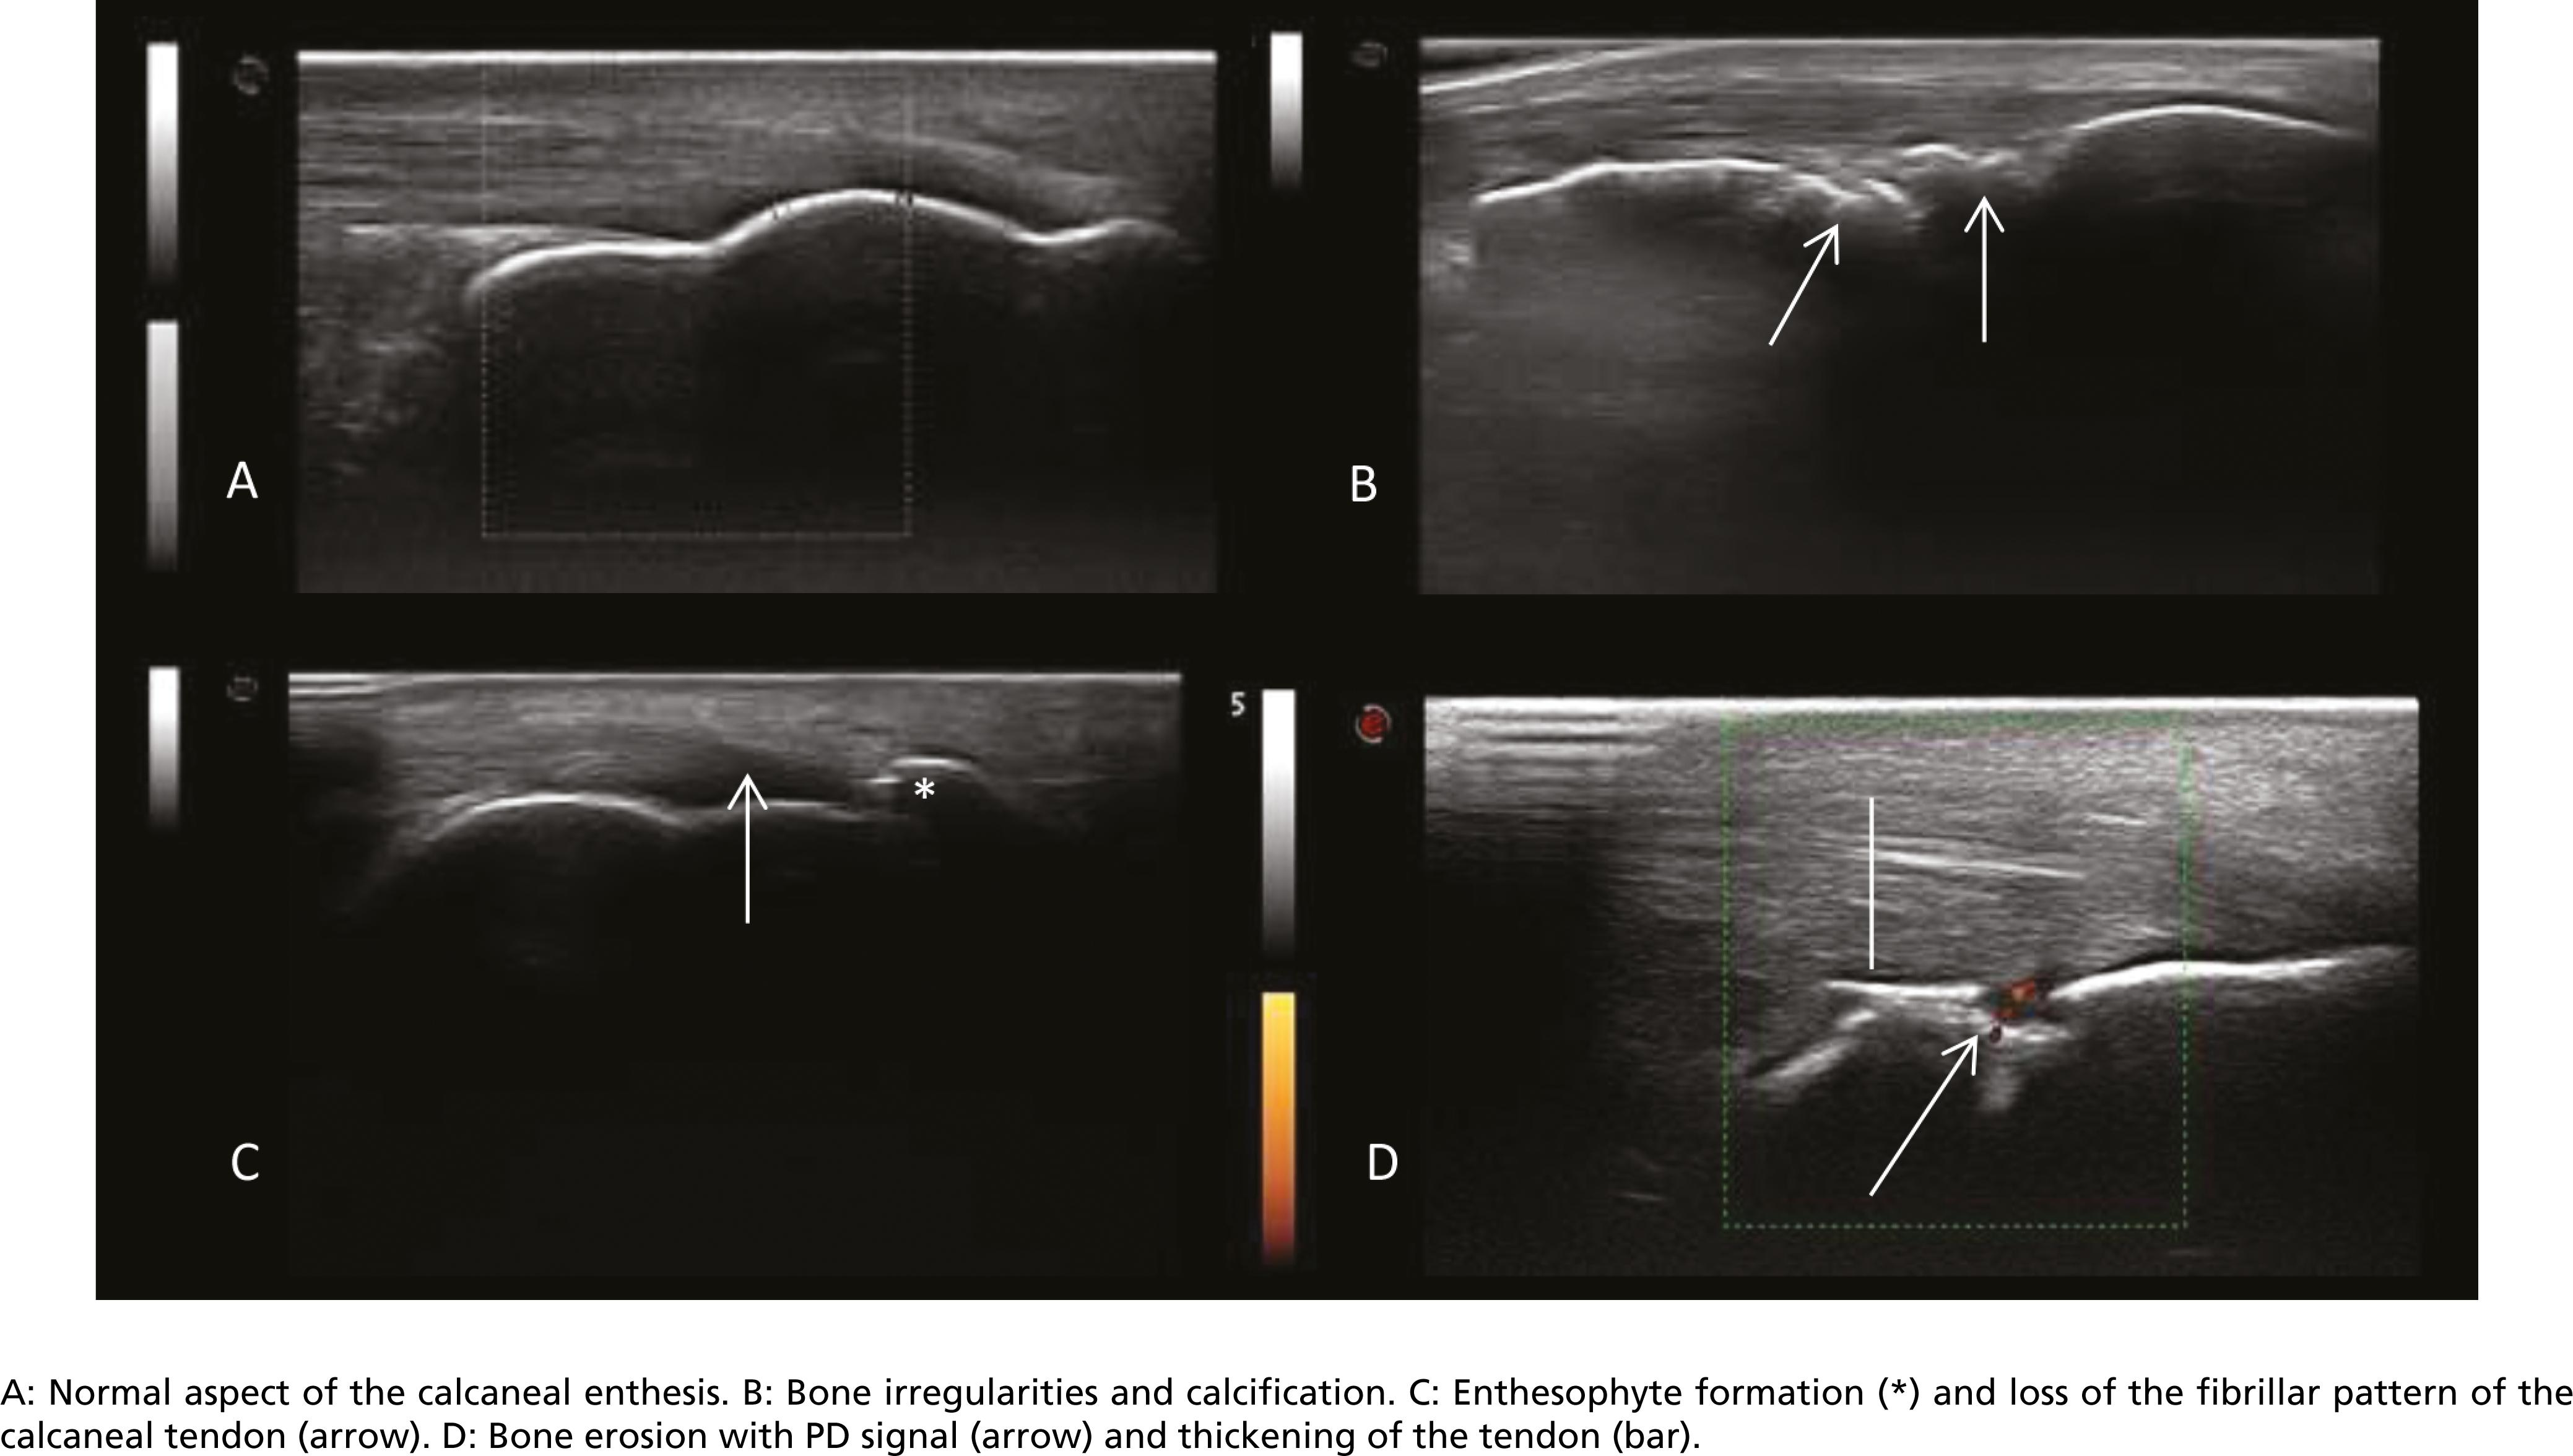 Ultrasound images of the calcaneal enthesis.